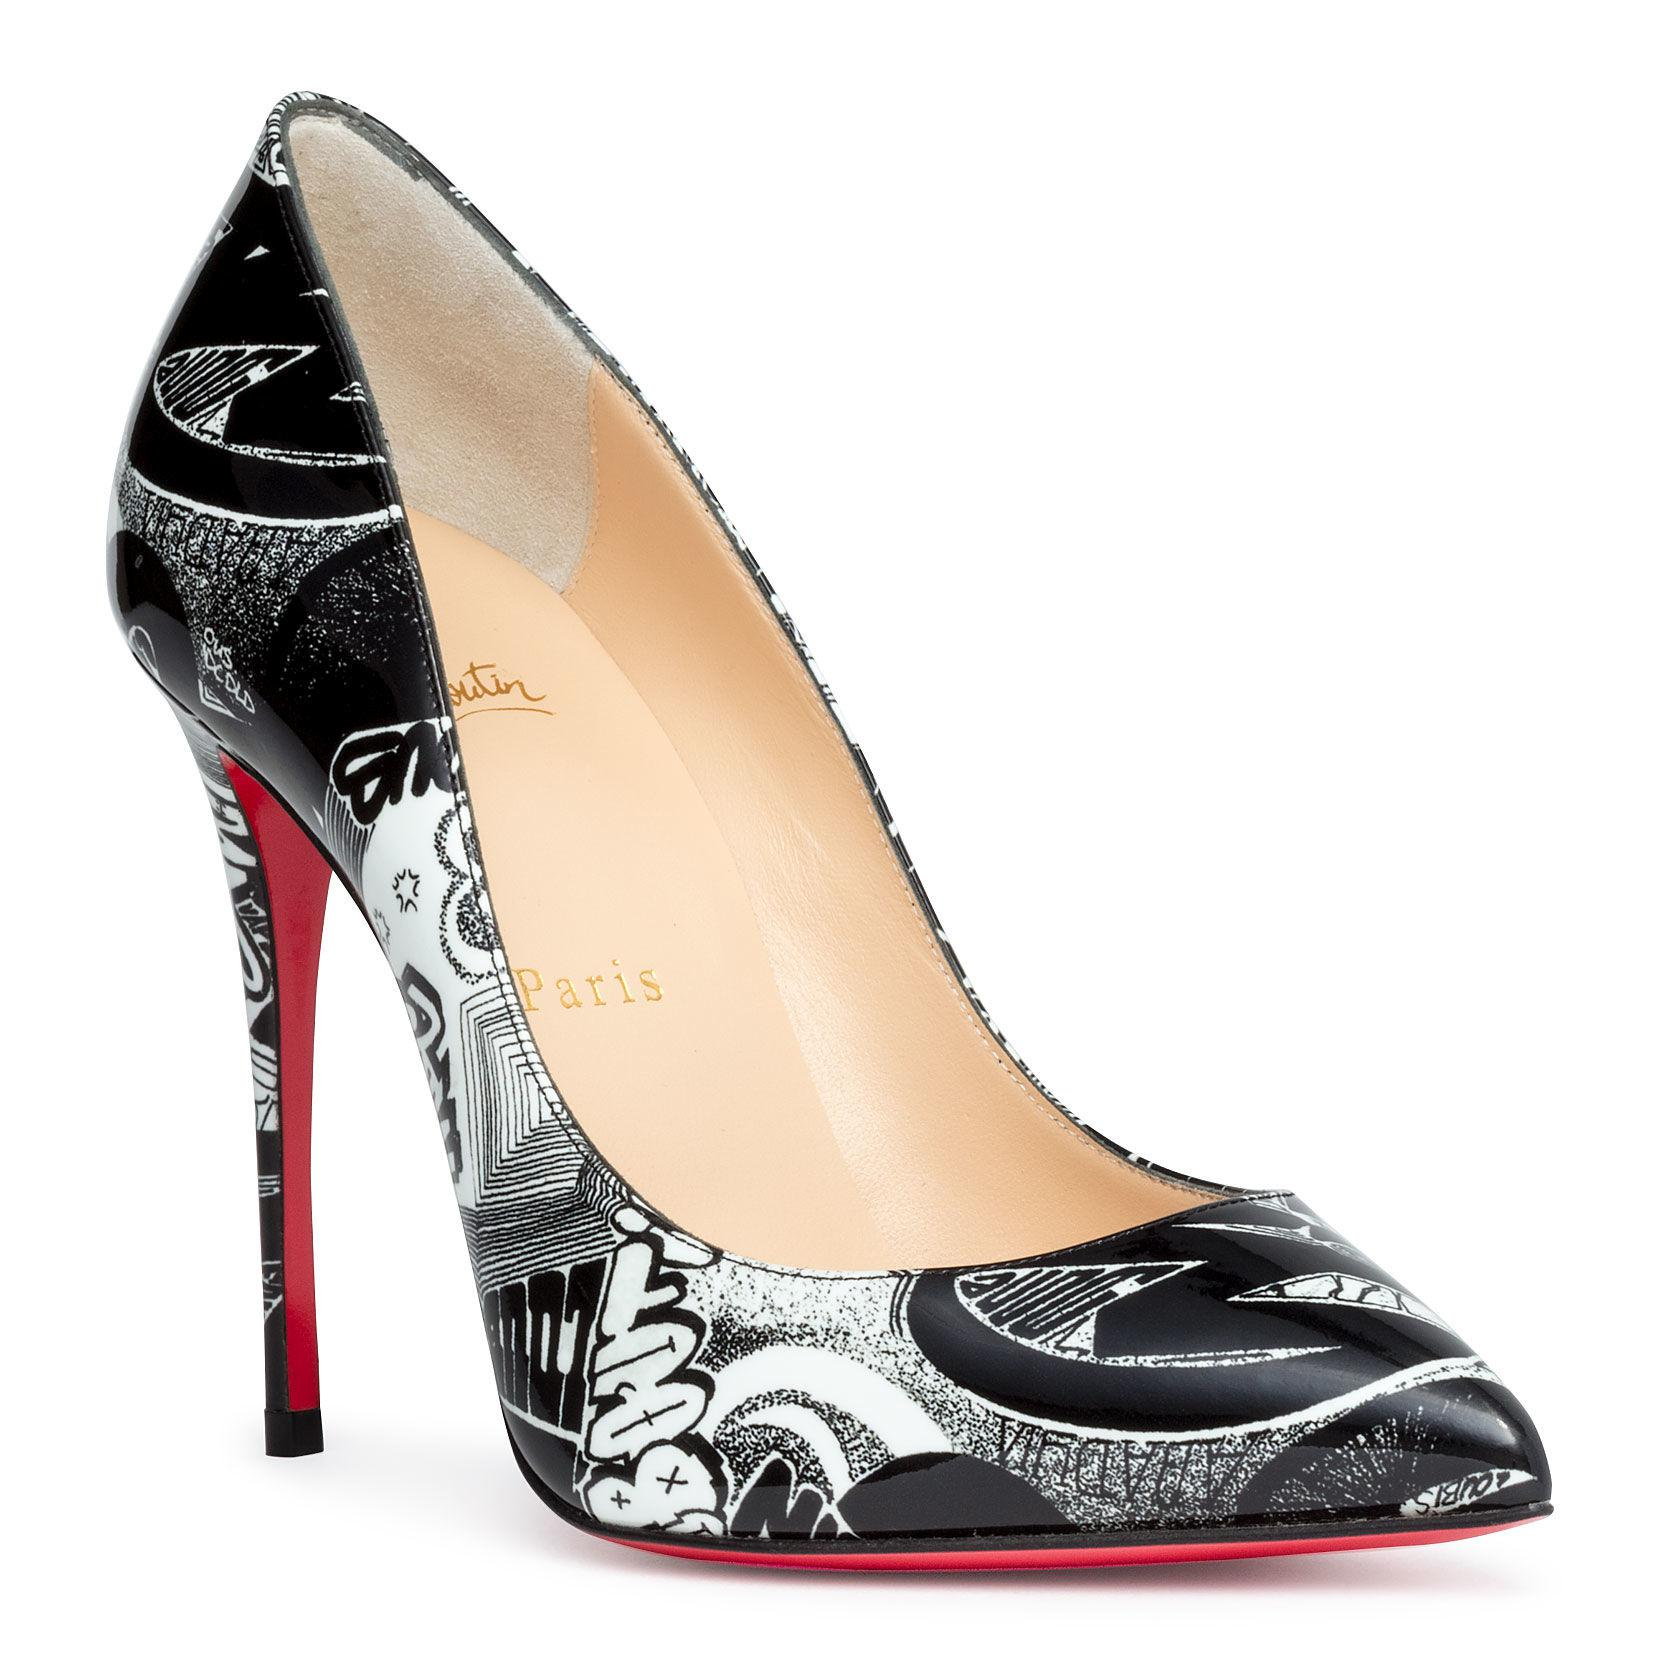 fae66748388a Christian Louboutin. Women s Pigalle Follies 100 Nicograf Black Patent  Leather Pumps